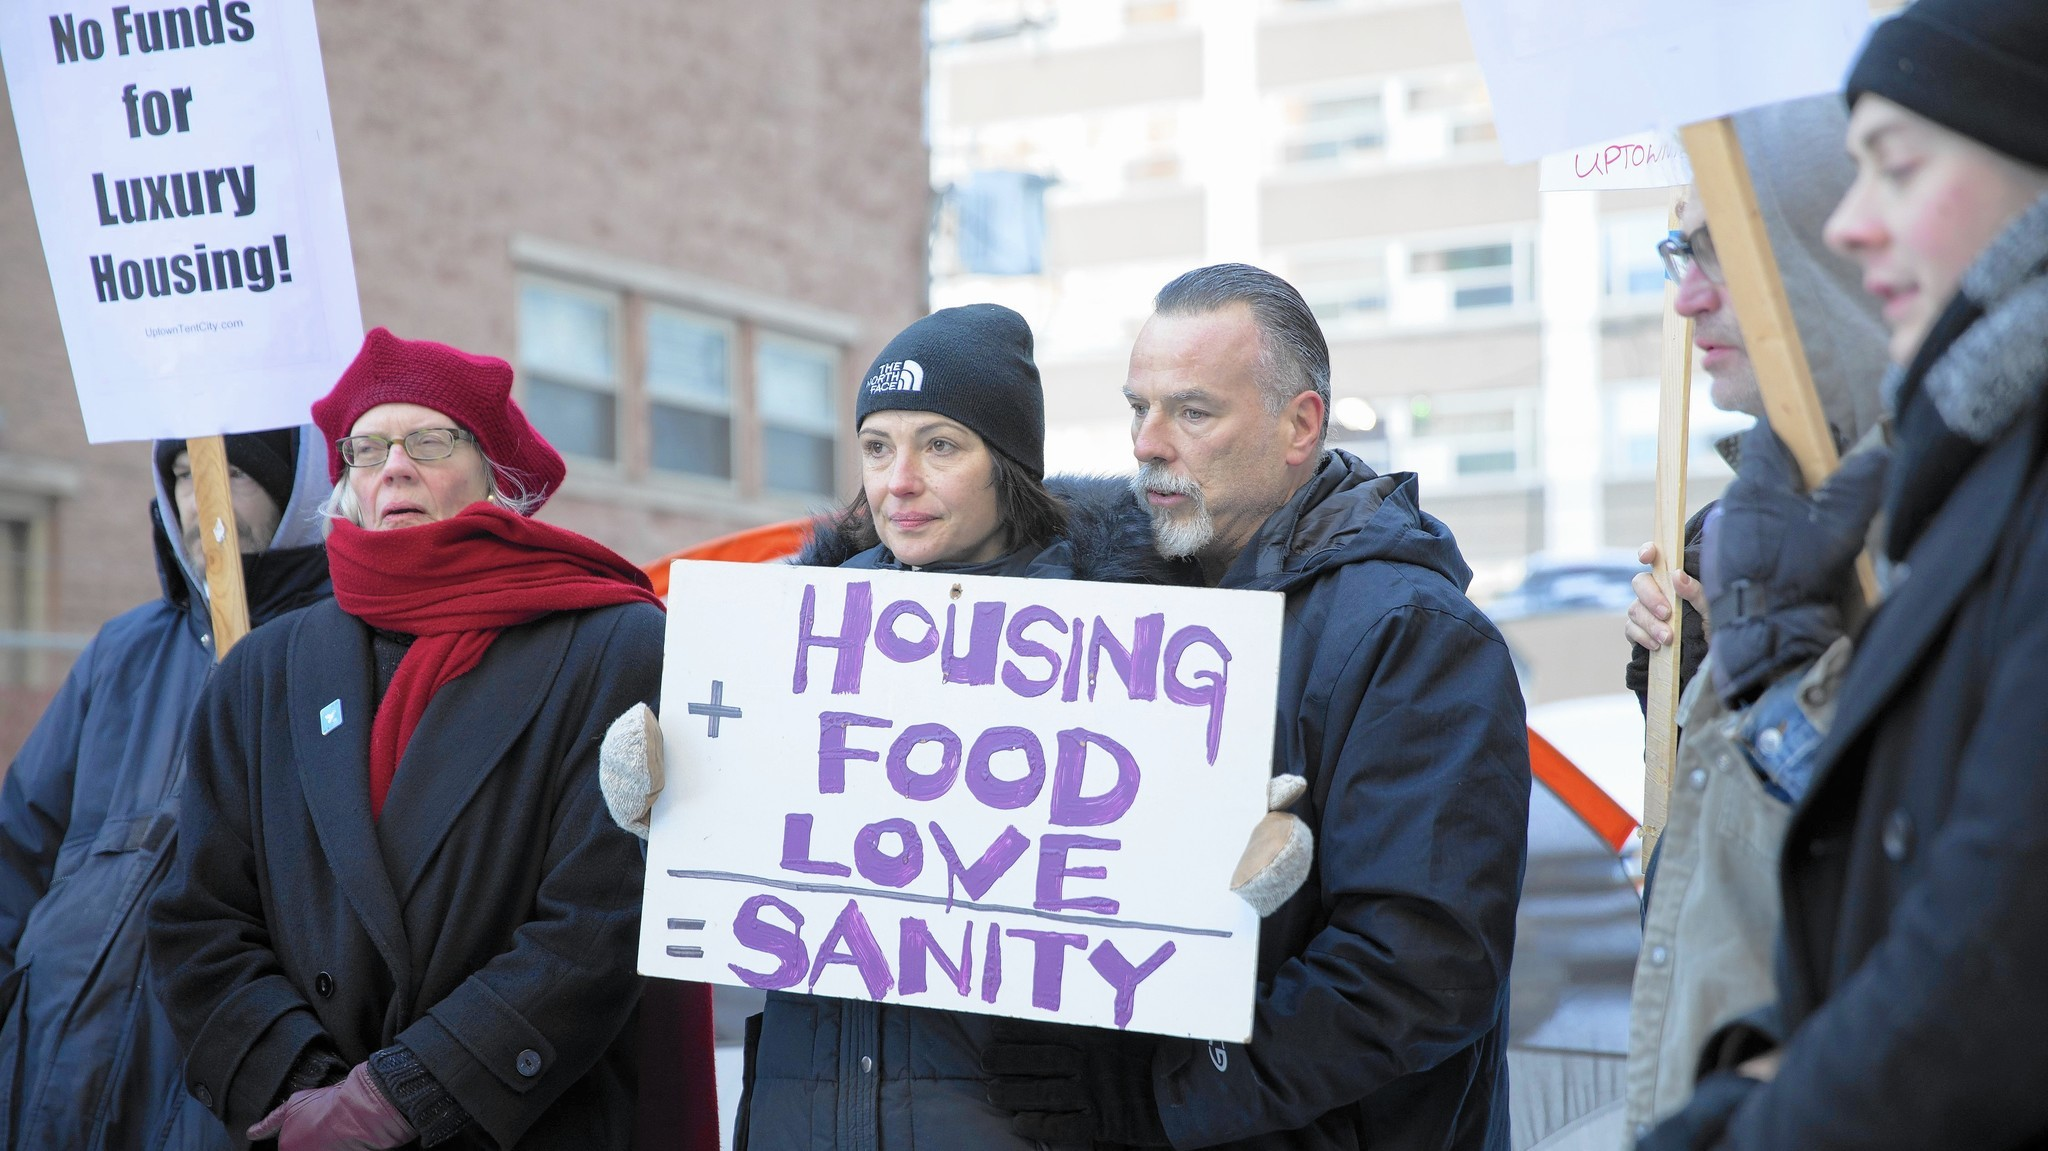 As Uptown Shelter Slated To Close Community Seeks Help For Homeless